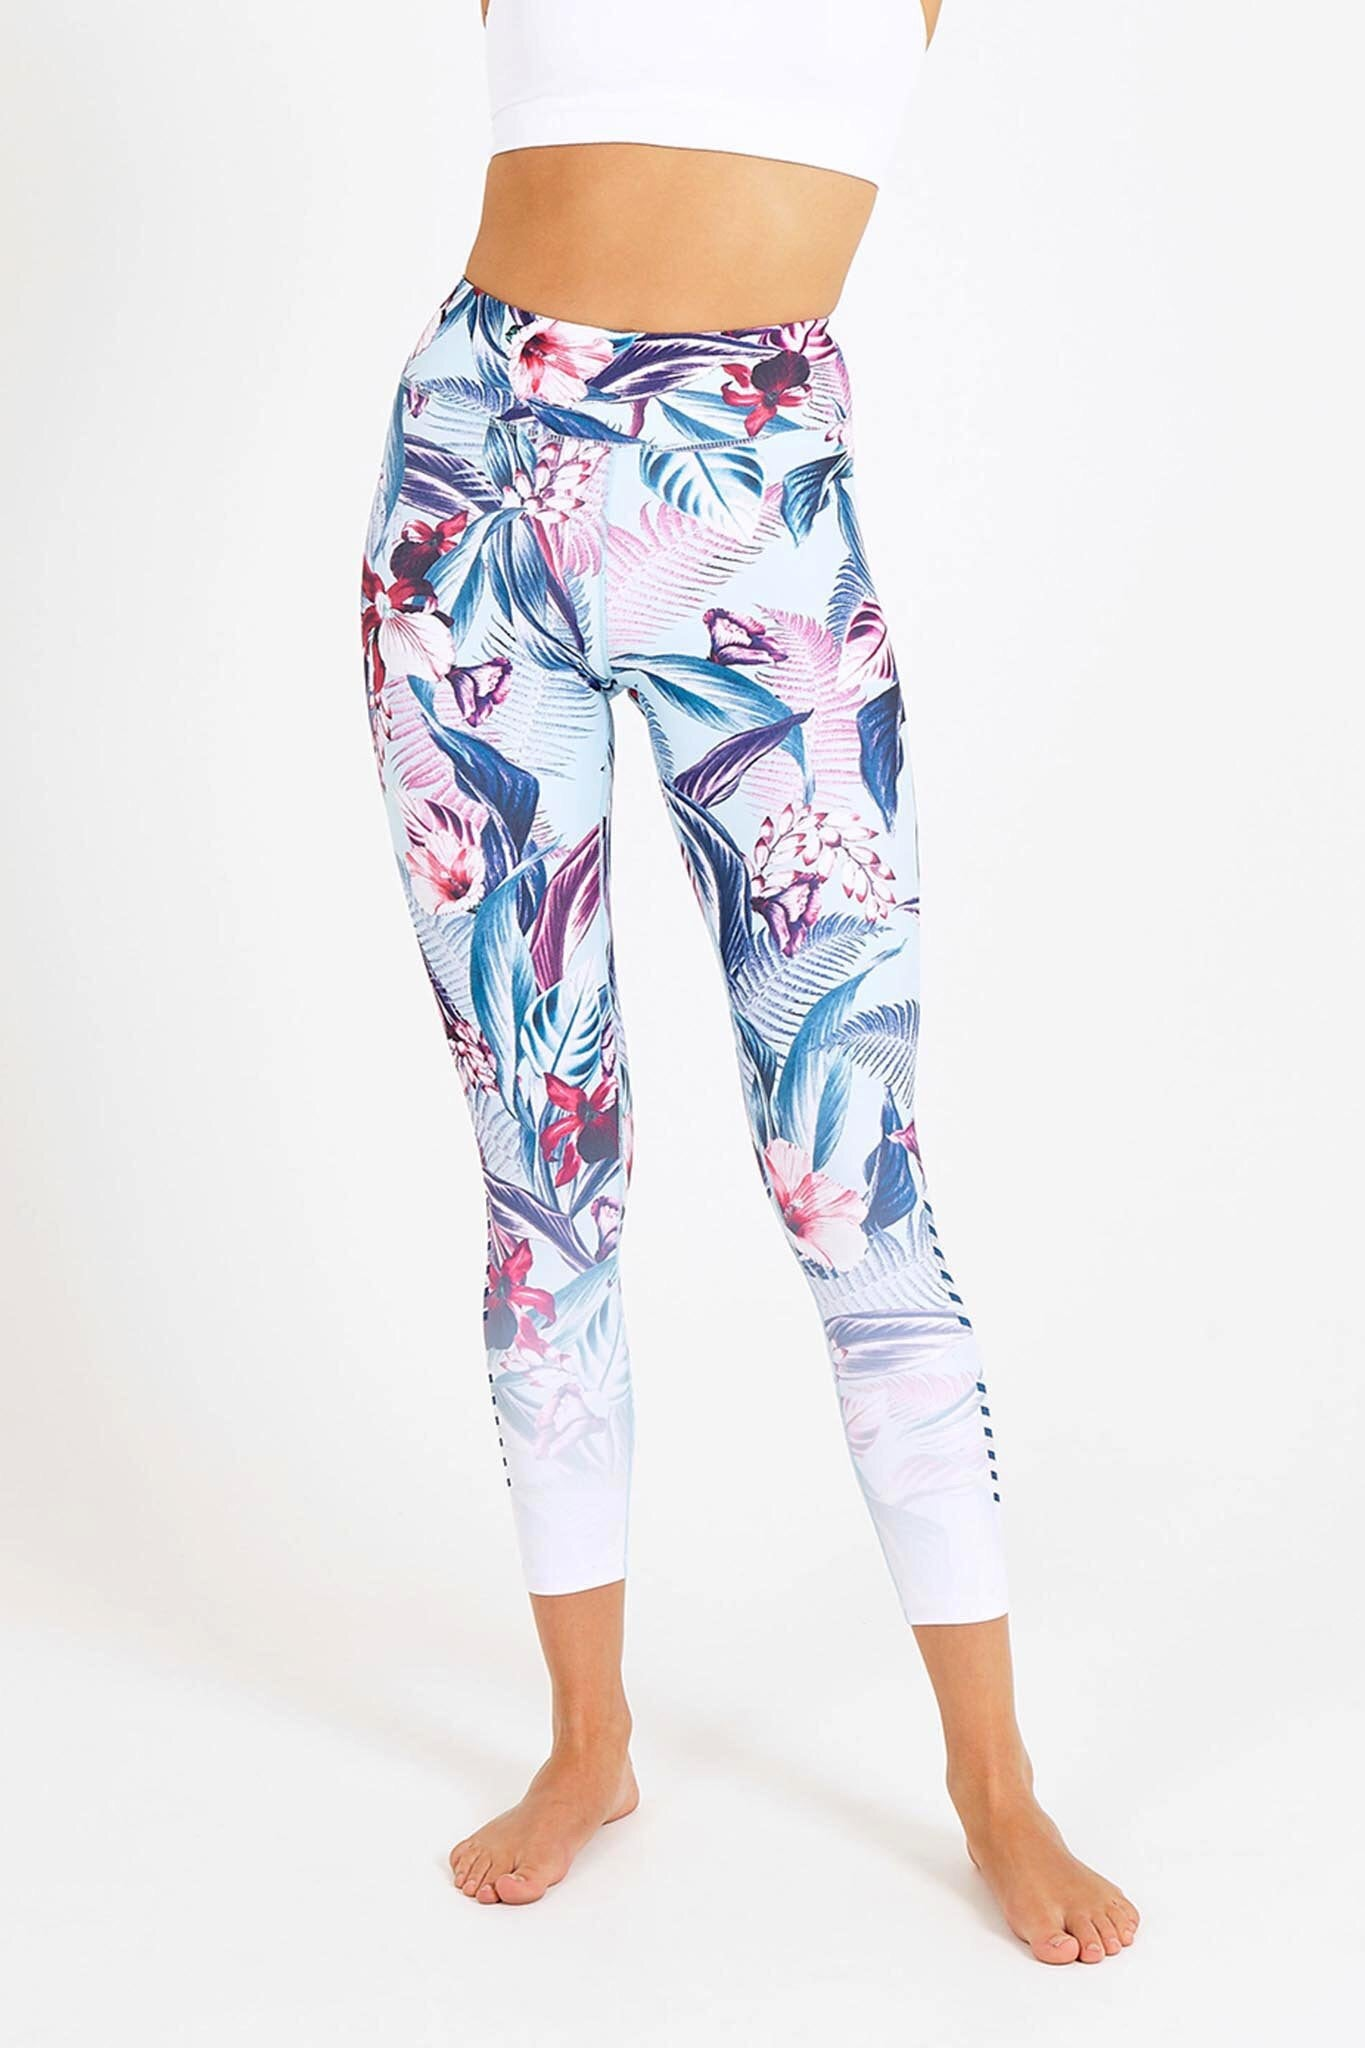 Dharma Bums Pastel Forest High Waist Printed Legging - yApparel